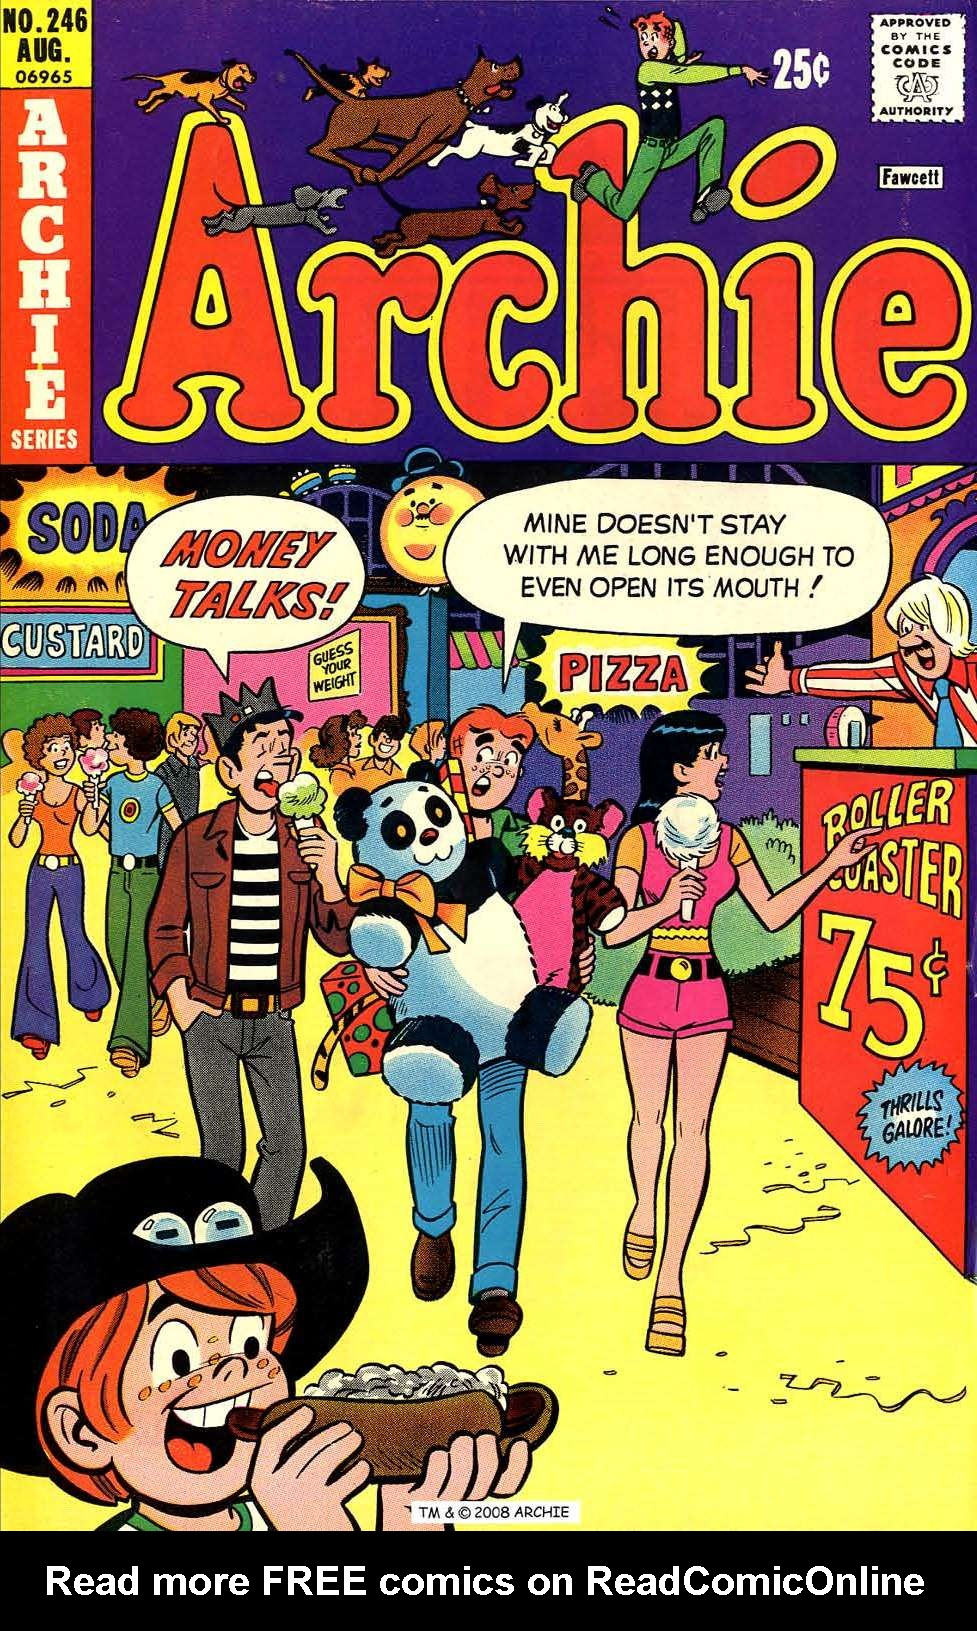 Read online Archie (1960) comic -  Issue #246 - 1